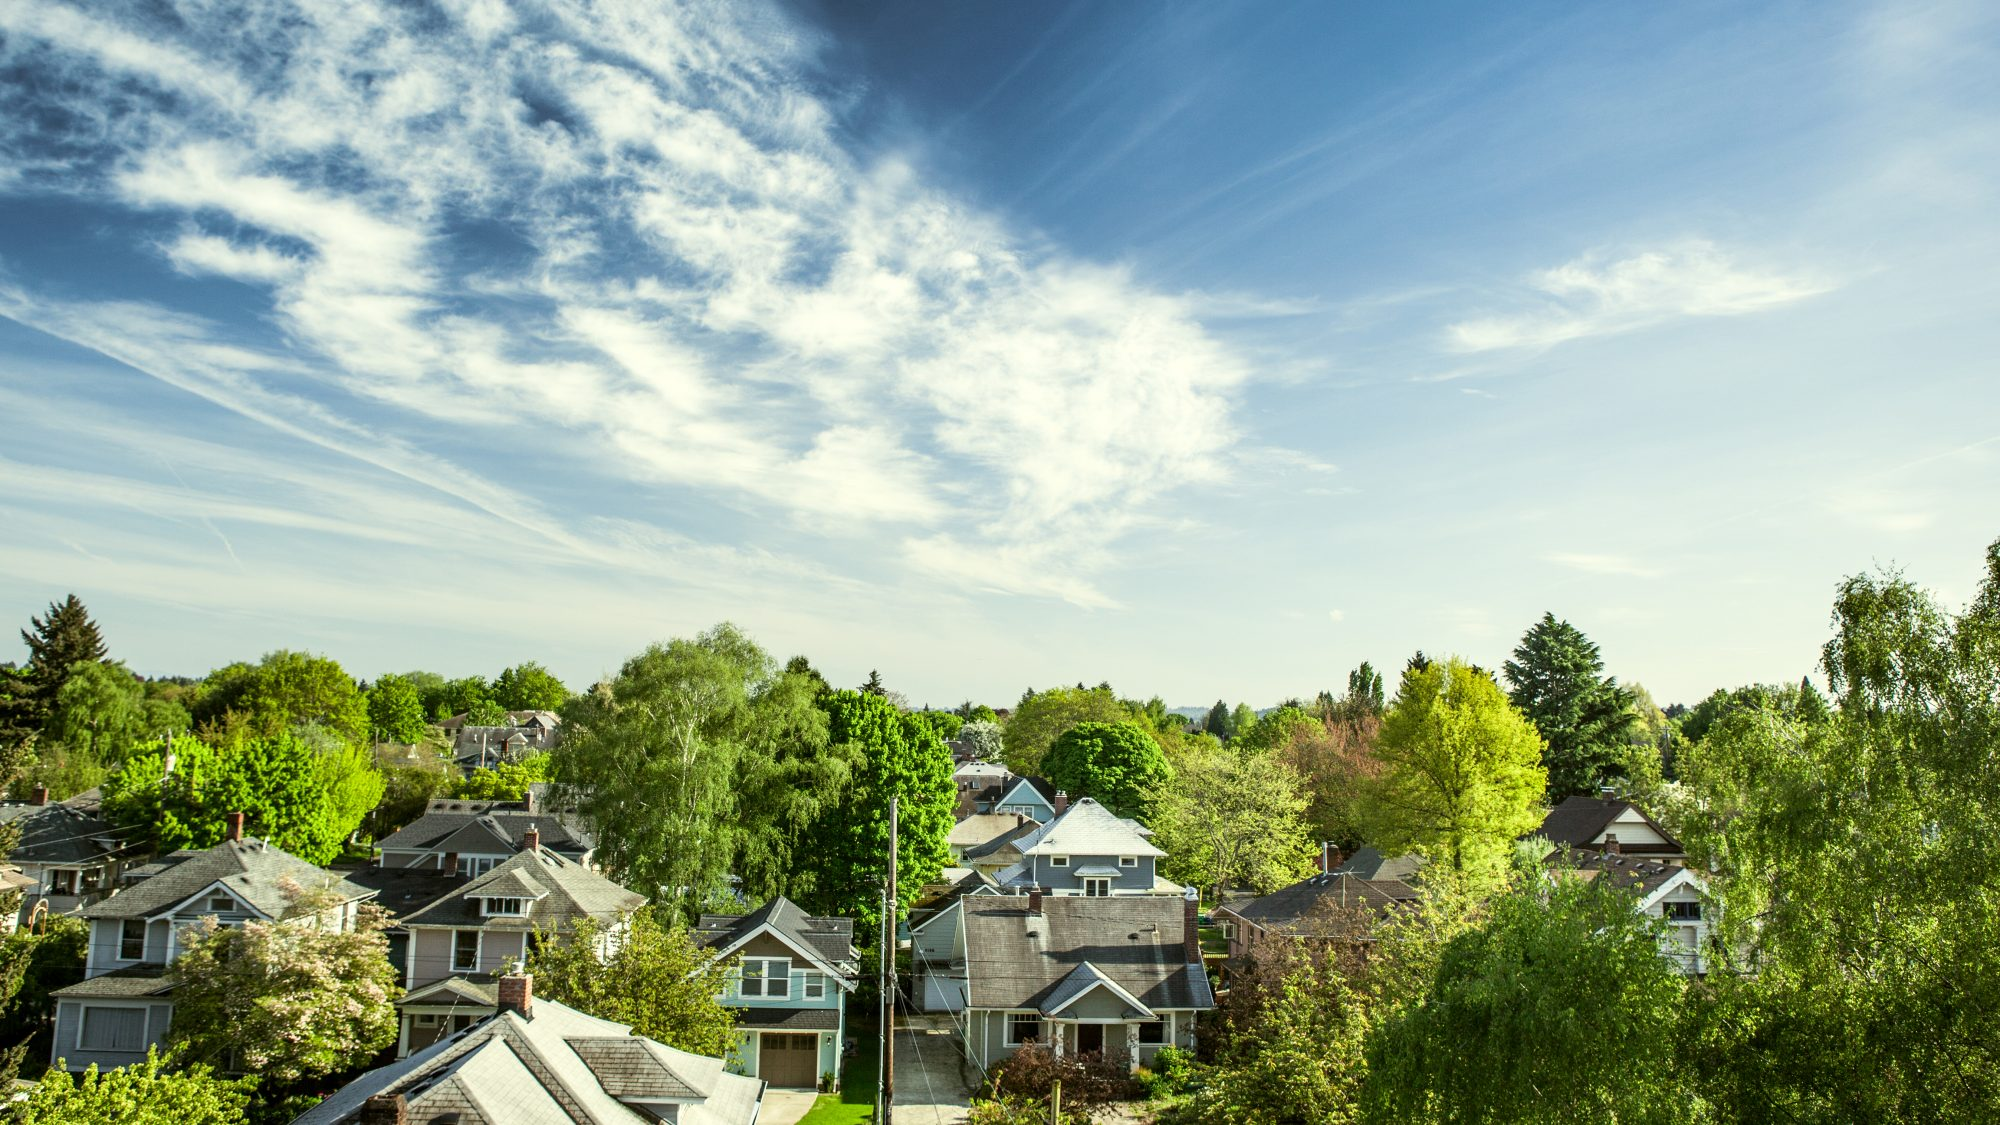 The 25 Most Neighborly Cities in the US 2020, According to Data: Portland, Oregon